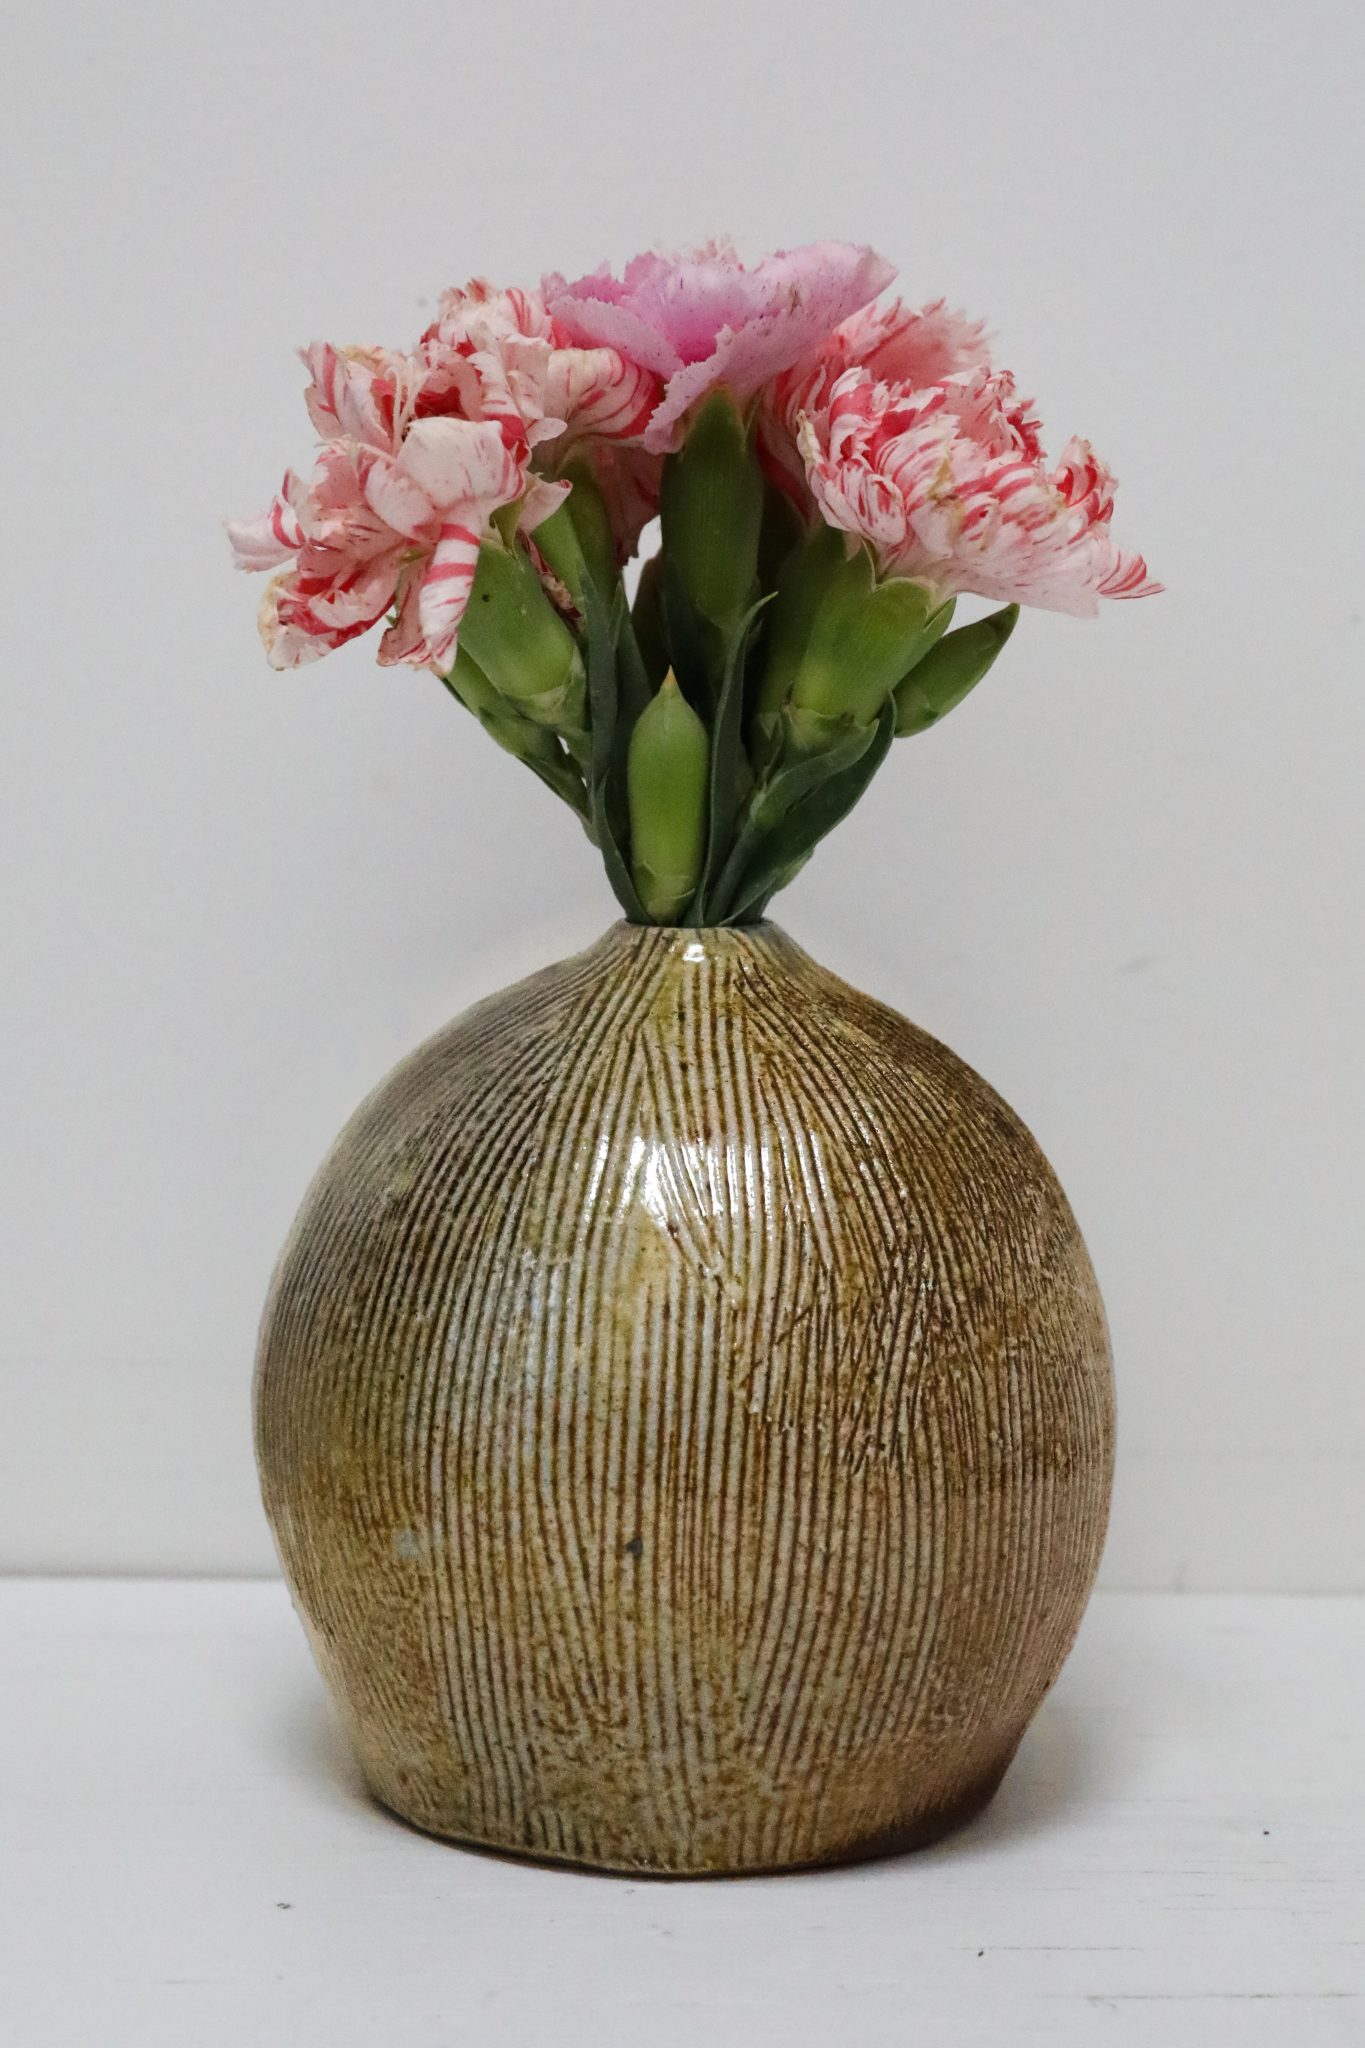 Wood-Fired Vase by Tea Wallmark